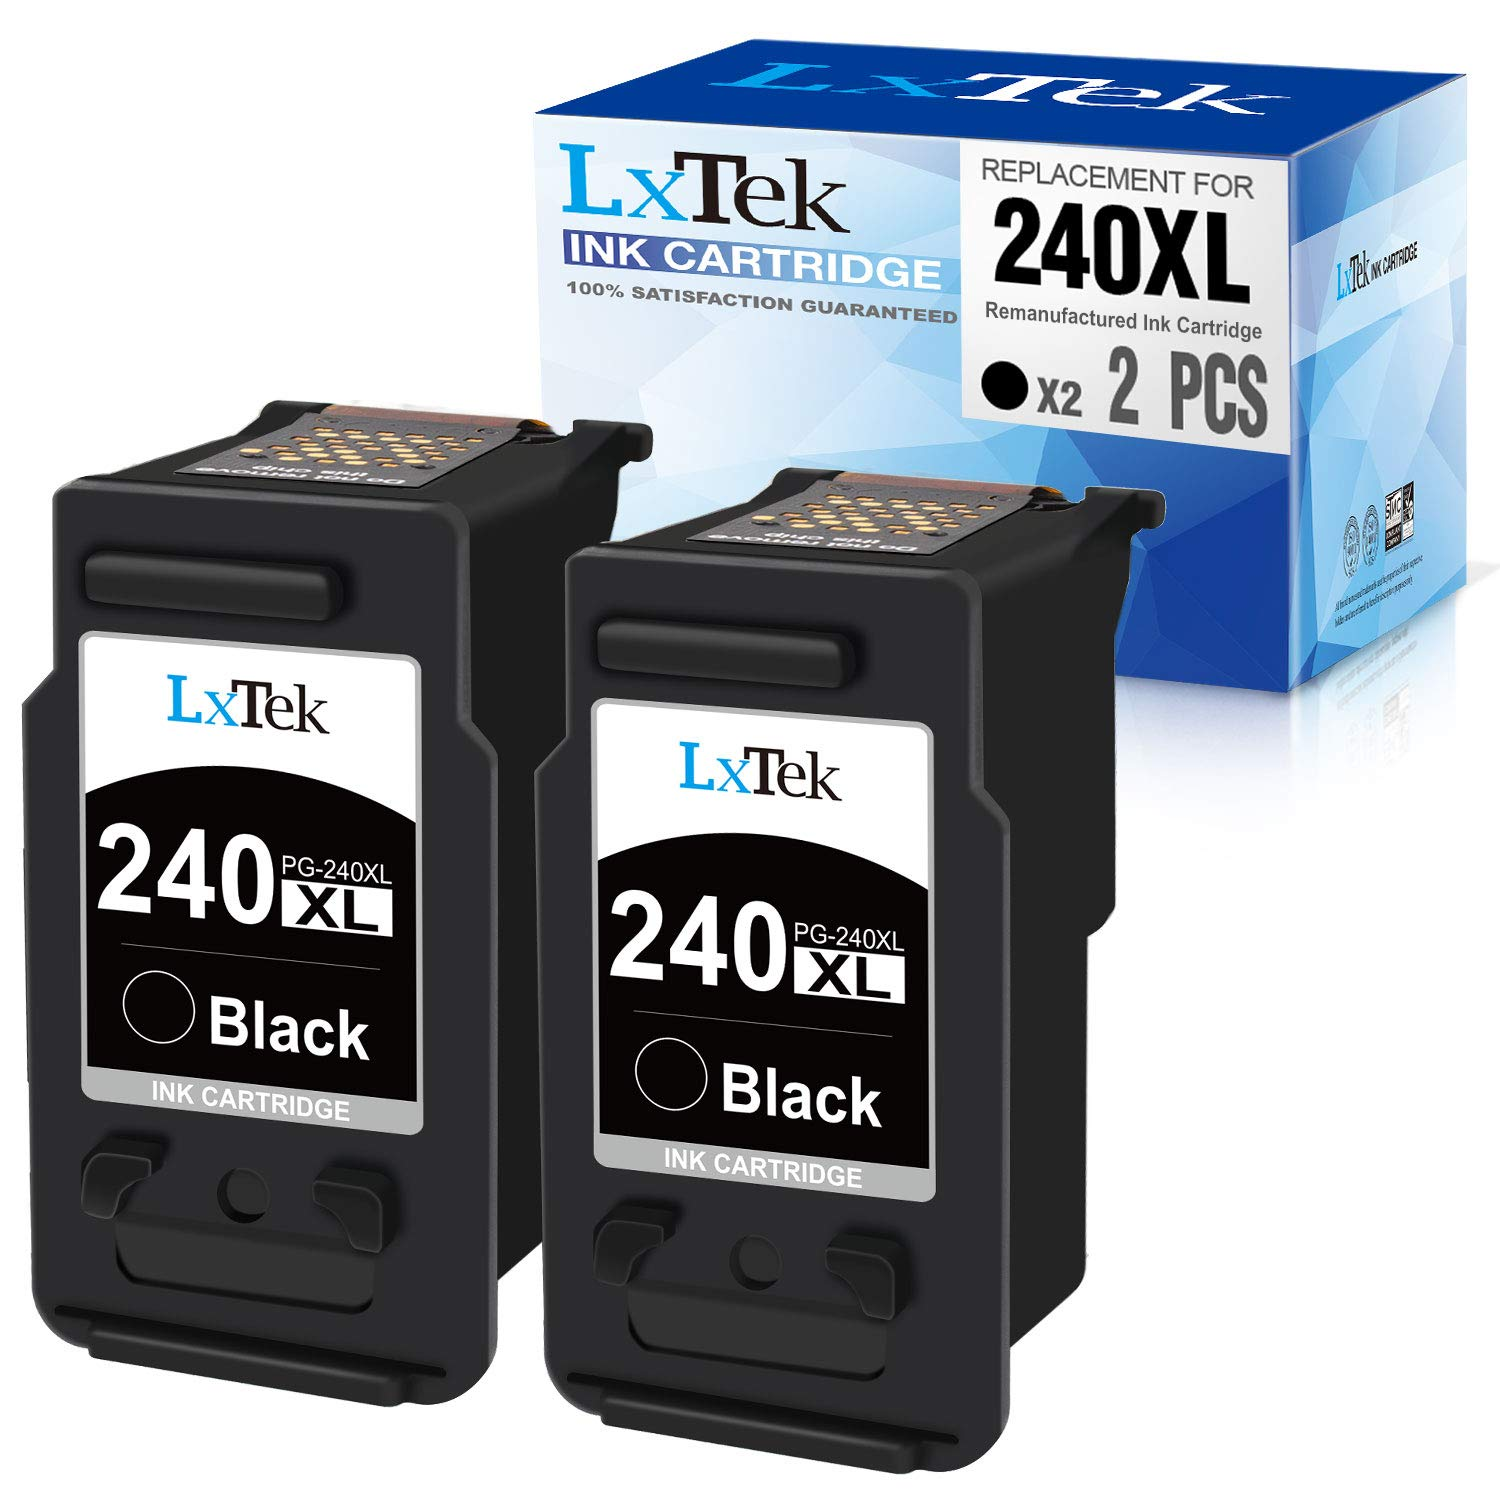 LxTek Remanufactured Ink Cartridge Replacement for Canon 240XL PG-240XL PG240XL PG-240 PG240 240XL 240 XL to use with PIXMA MG3620 TS5120 MX472 MG3220 MG2120 MX512 MX532 MG3520 MG3222 (Black, 2 Pack)